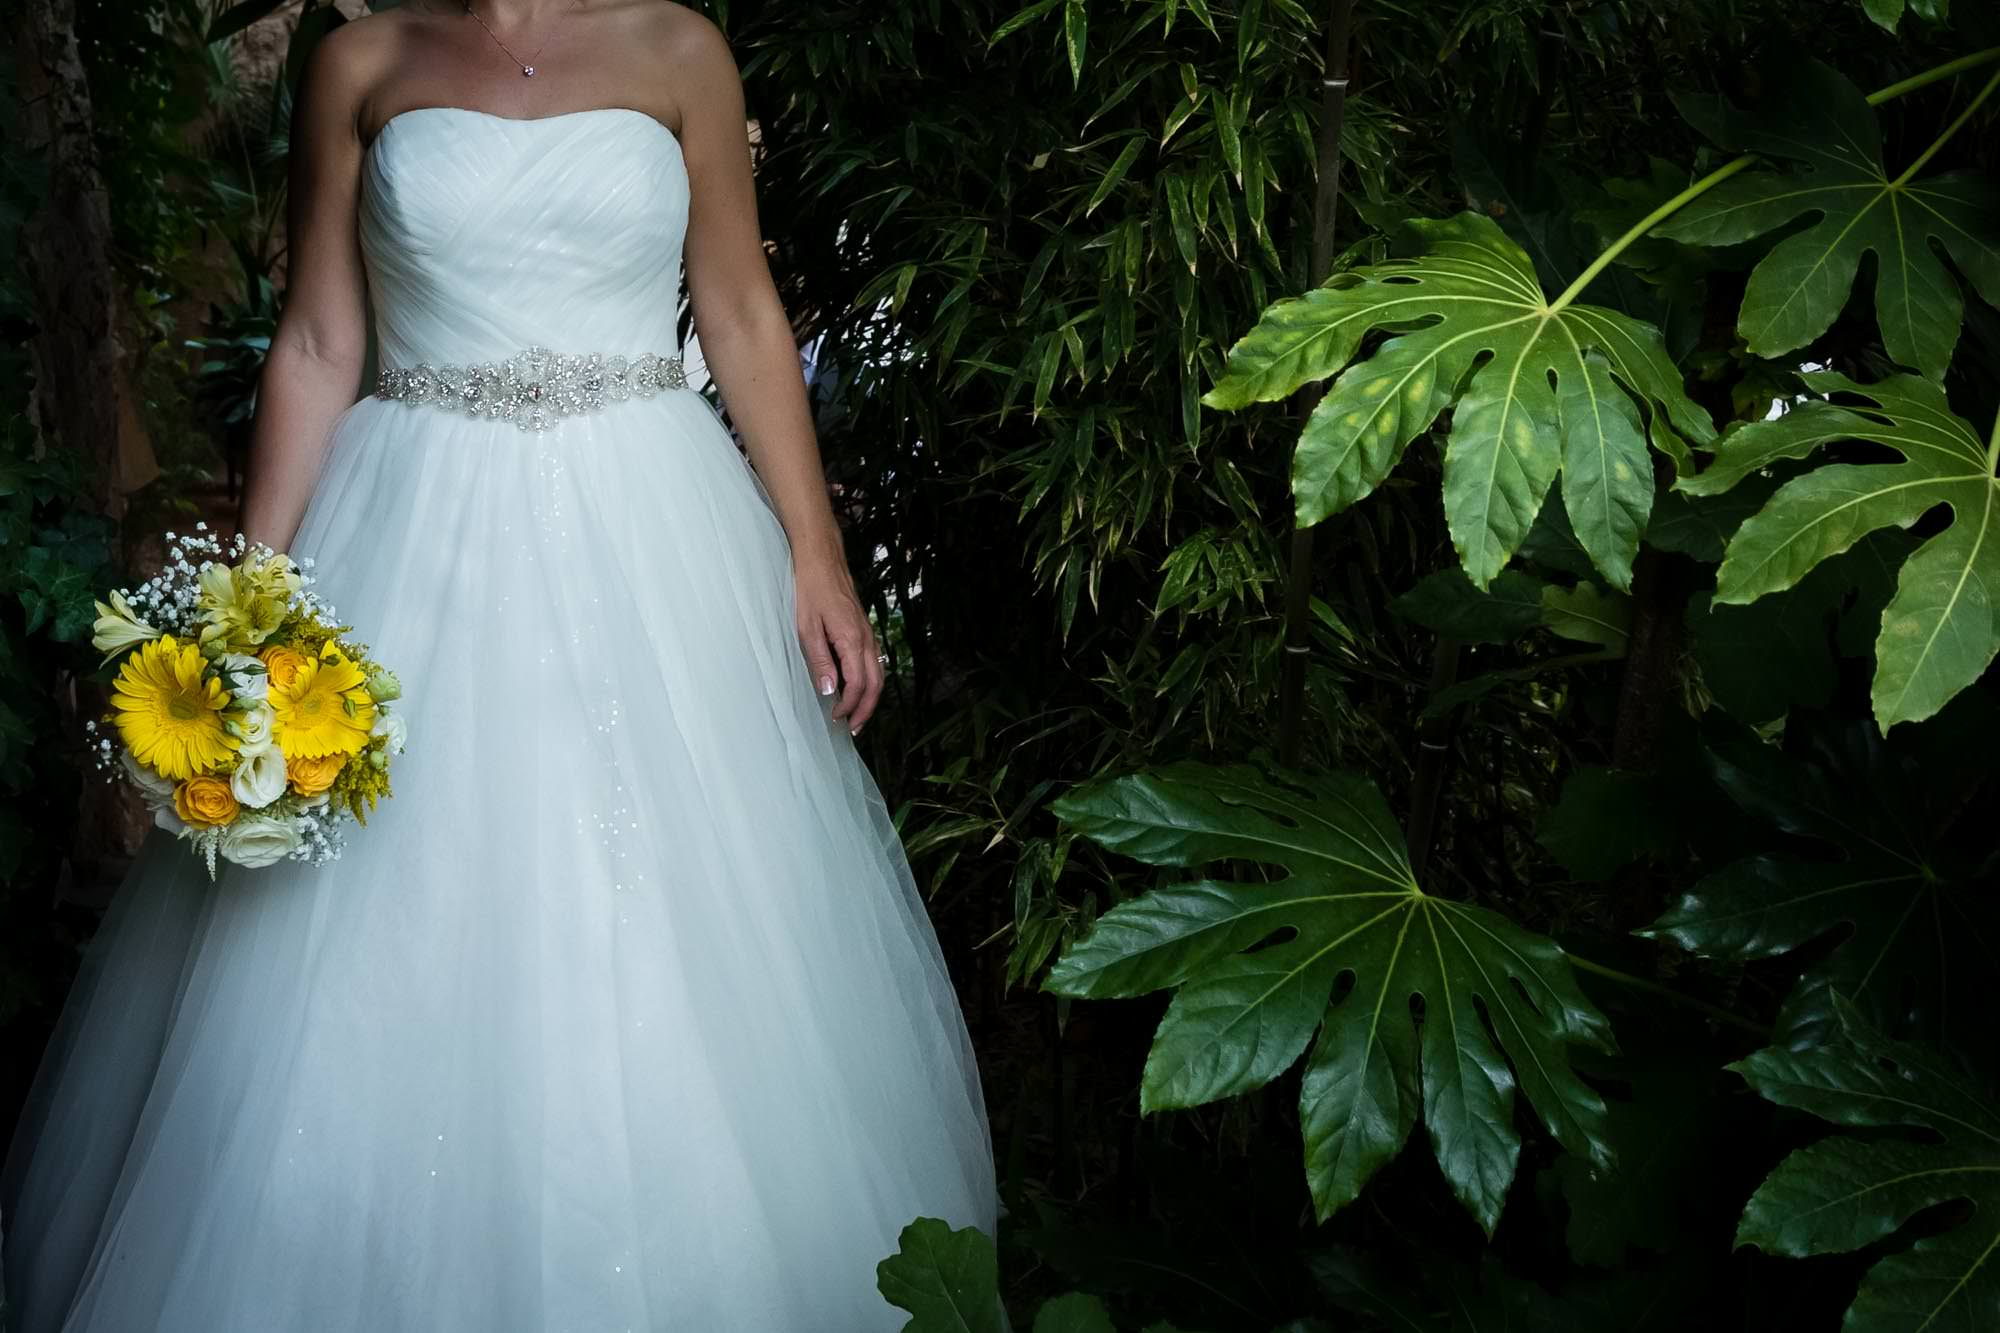 The bridal dress and beautiful flowers at Hotel Can Vedera in Mallorca by Mallorca destination wedding photographer Graham Warrellow